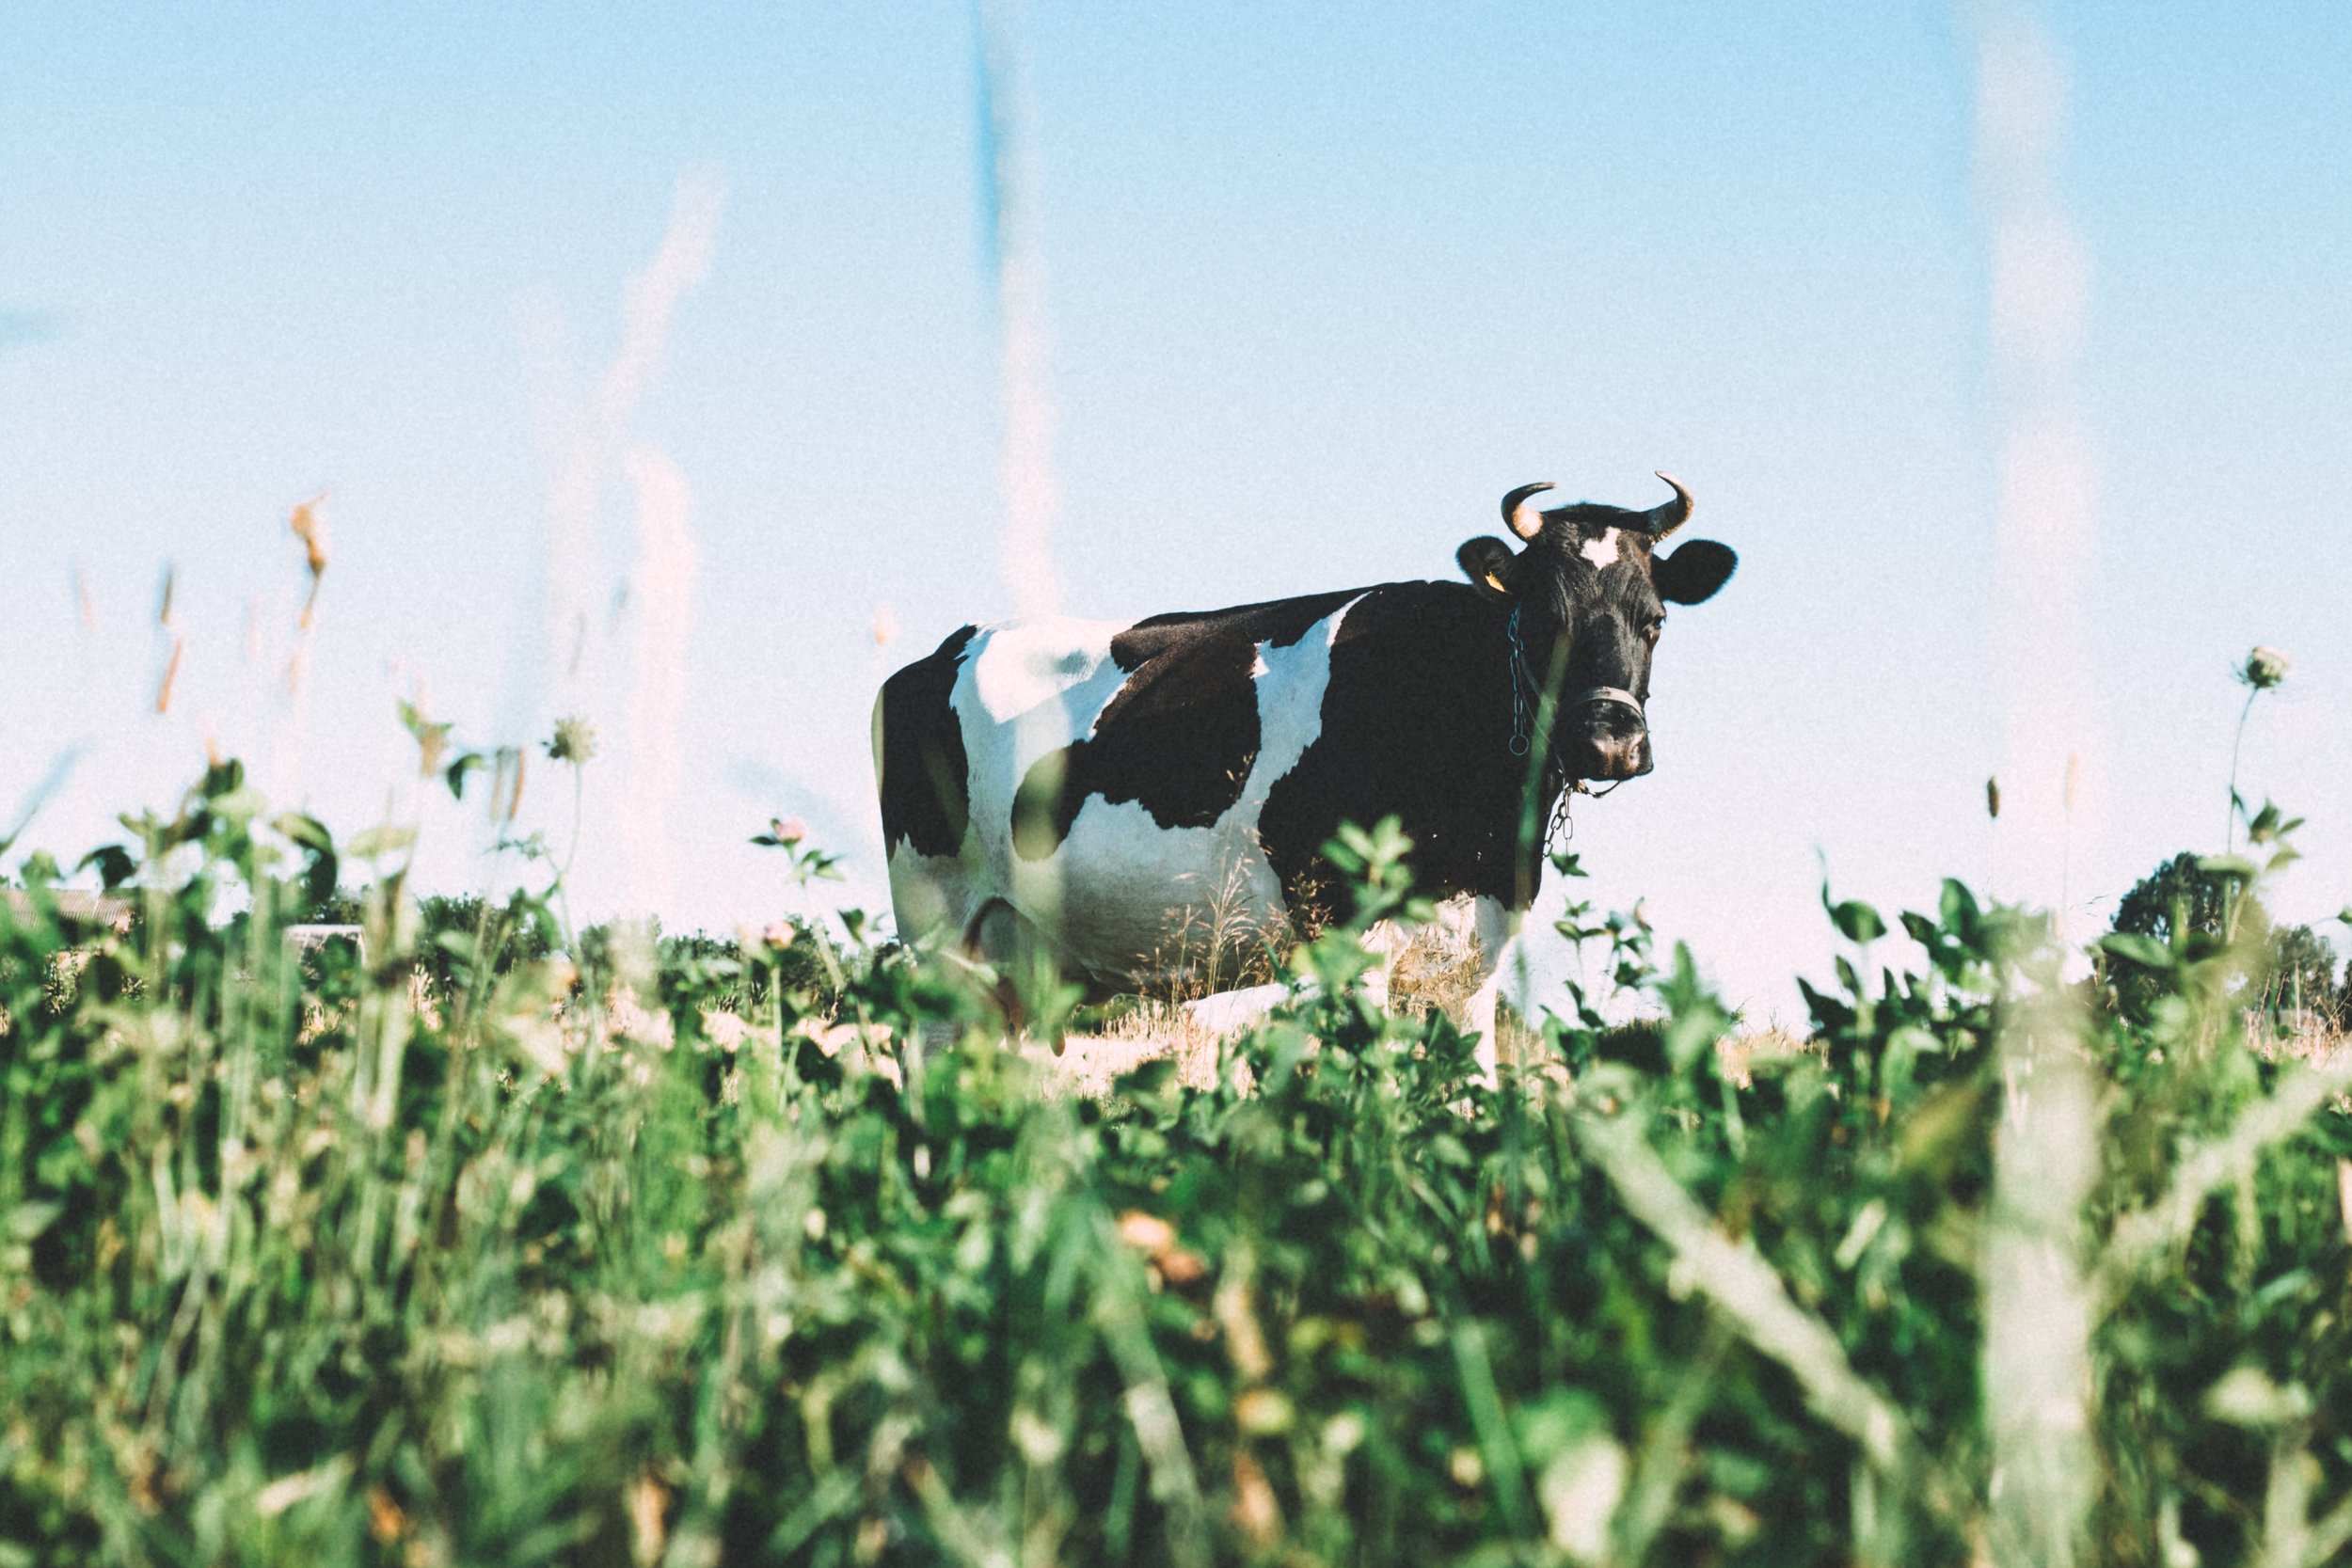 Colostrum is the first milk produced by humans and other mammals such as cows. It is nutrient-dense and has been used by humans for its health benefits since antiquity.